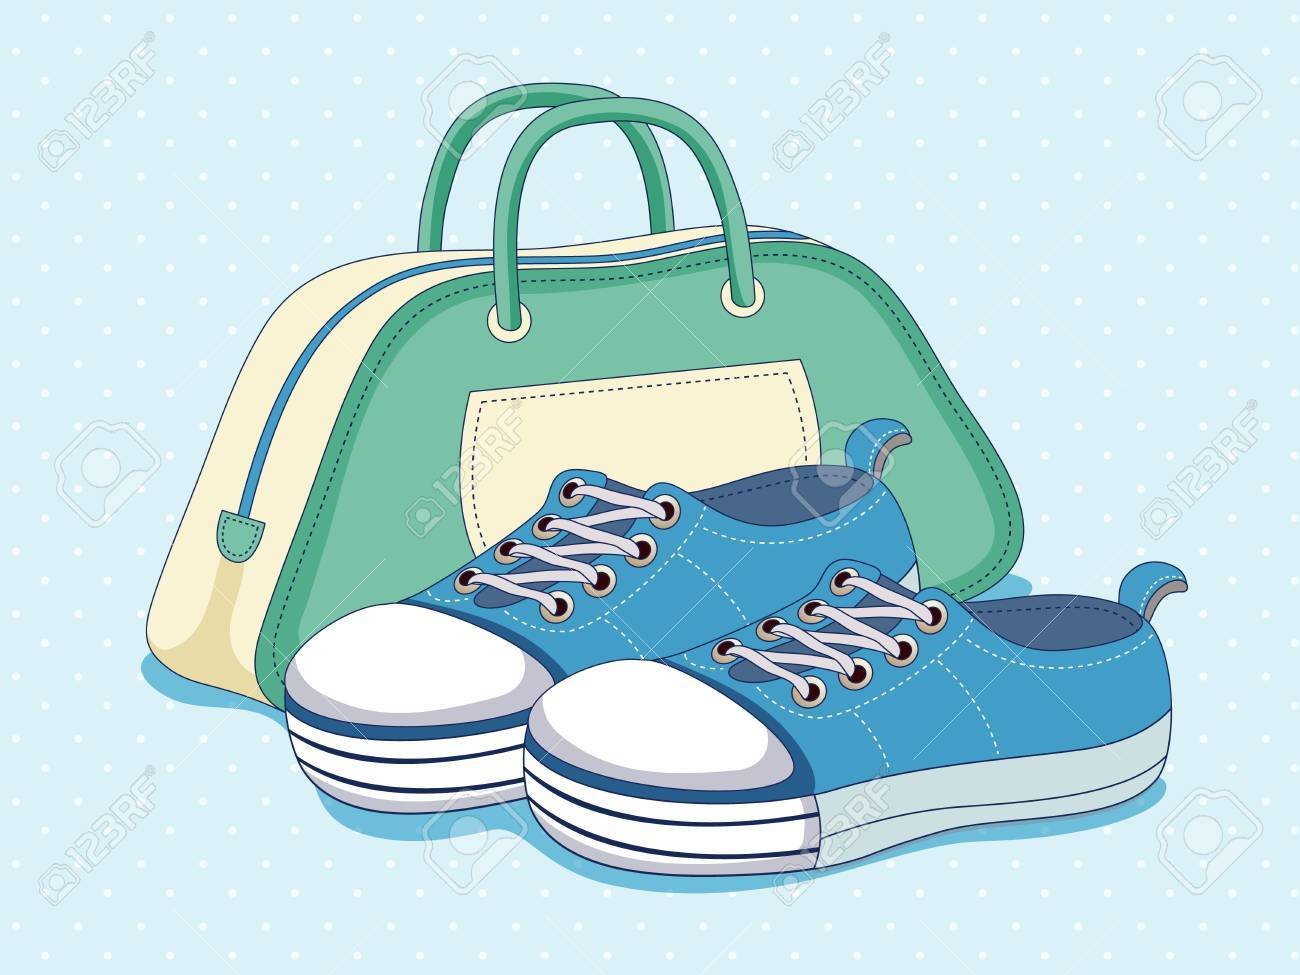 Sneakers and bag Stock Vector - 14536916